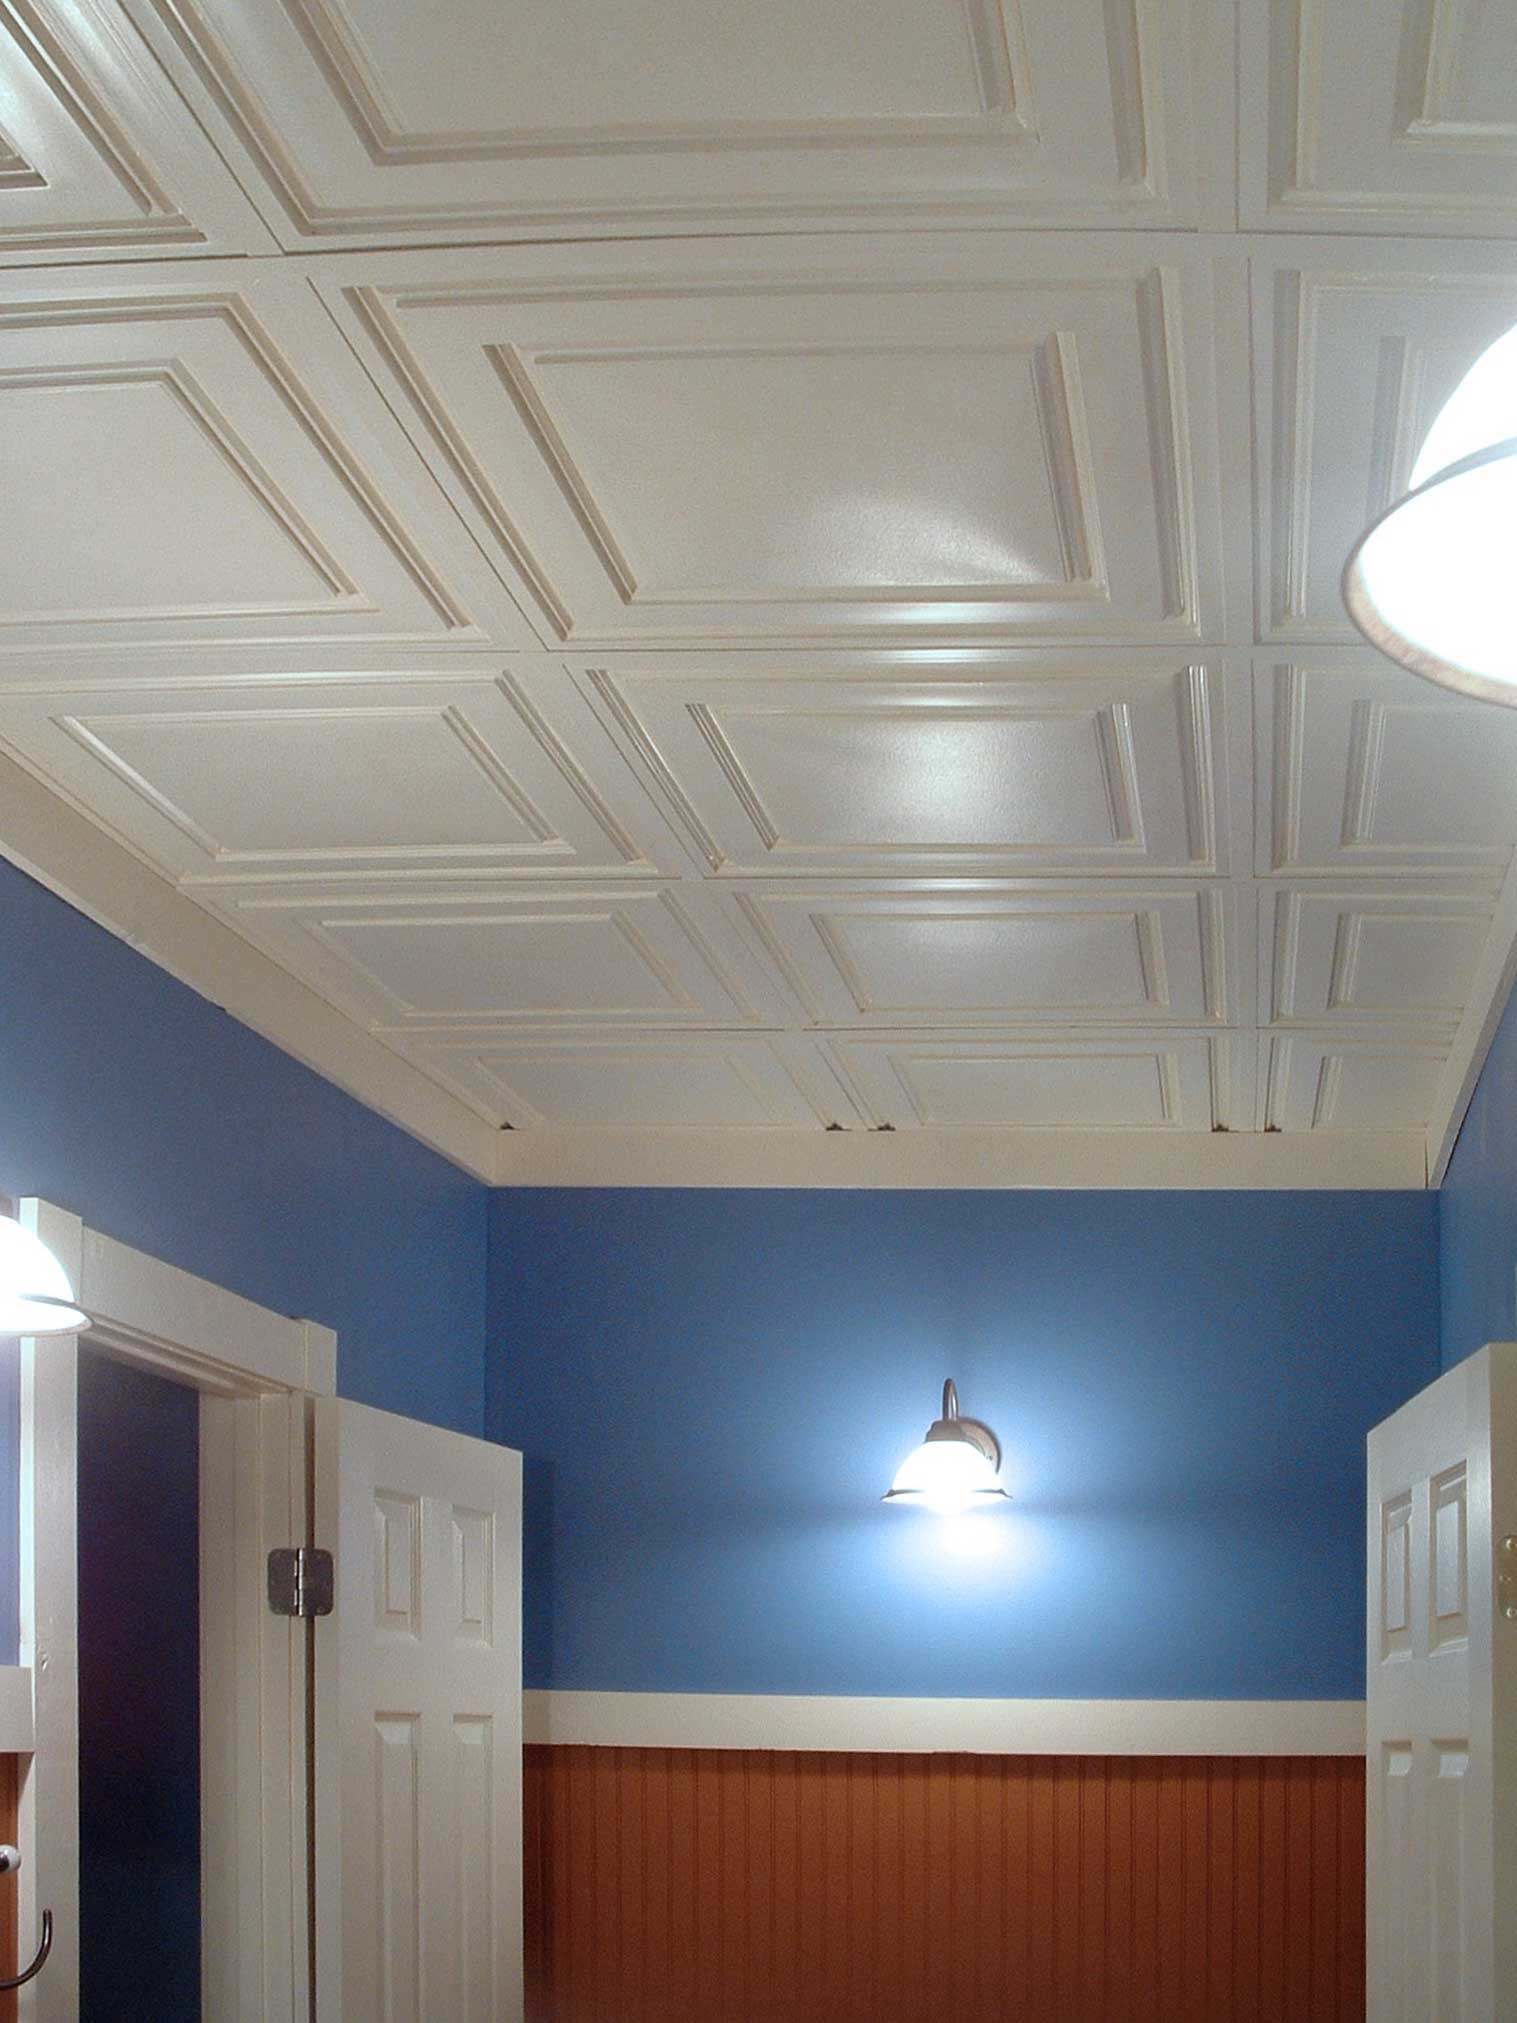 Painted ceiling tiles ceilume we went with the ceiling link grid system i know this is not your product but i thought id just share that next time i would go with one that locks dailygadgetfo Choice Image